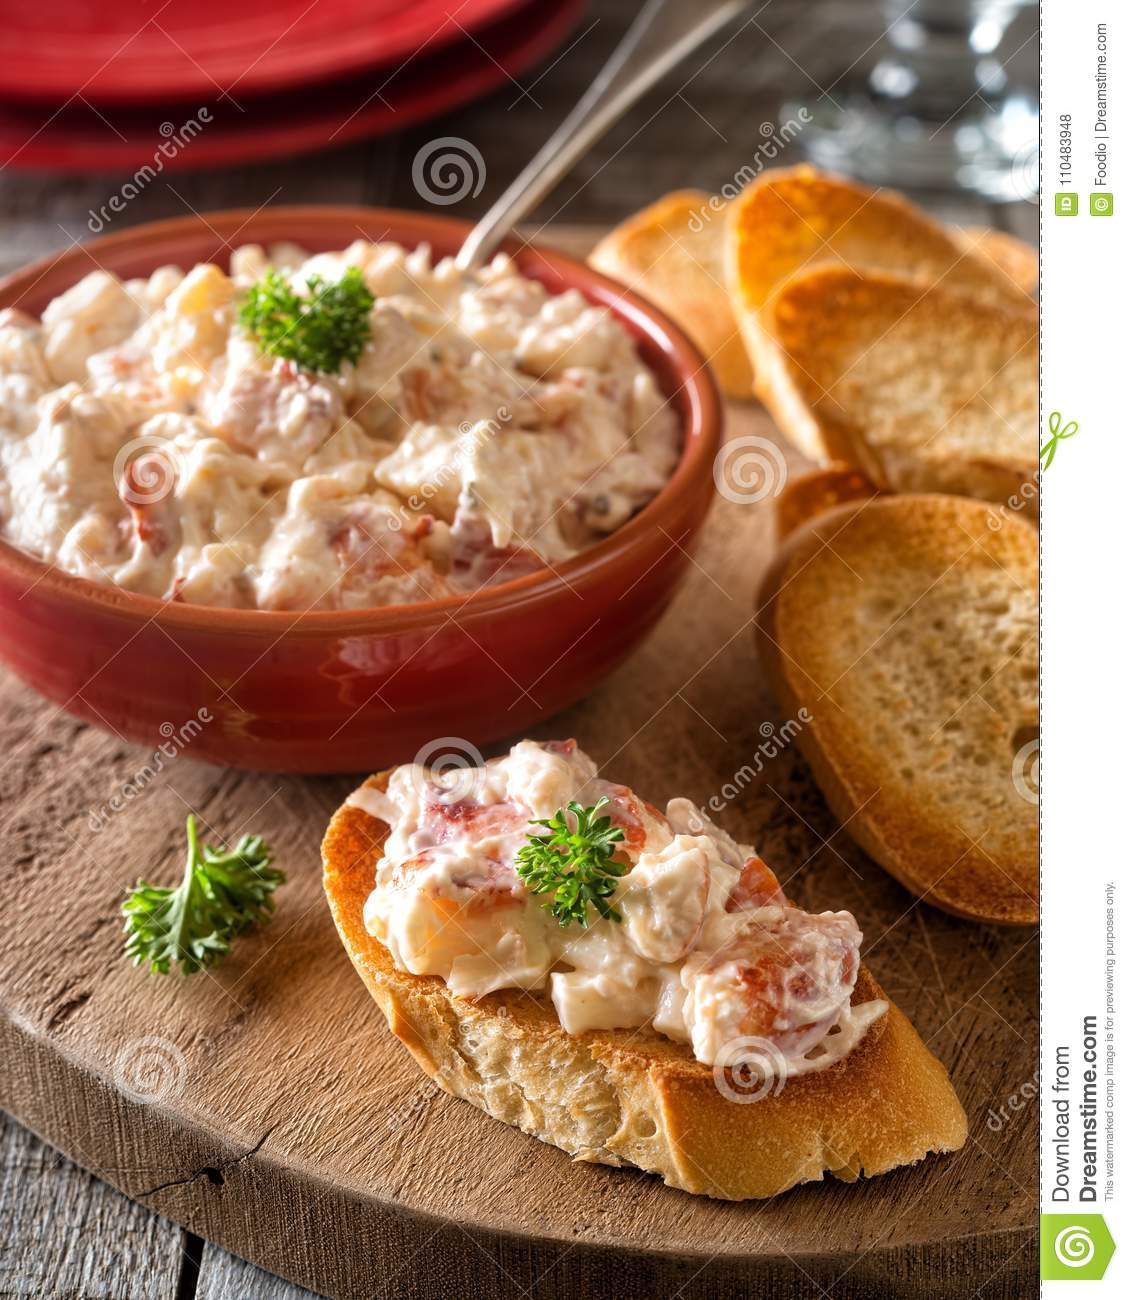 Lobster Salad with Toasted Baguette